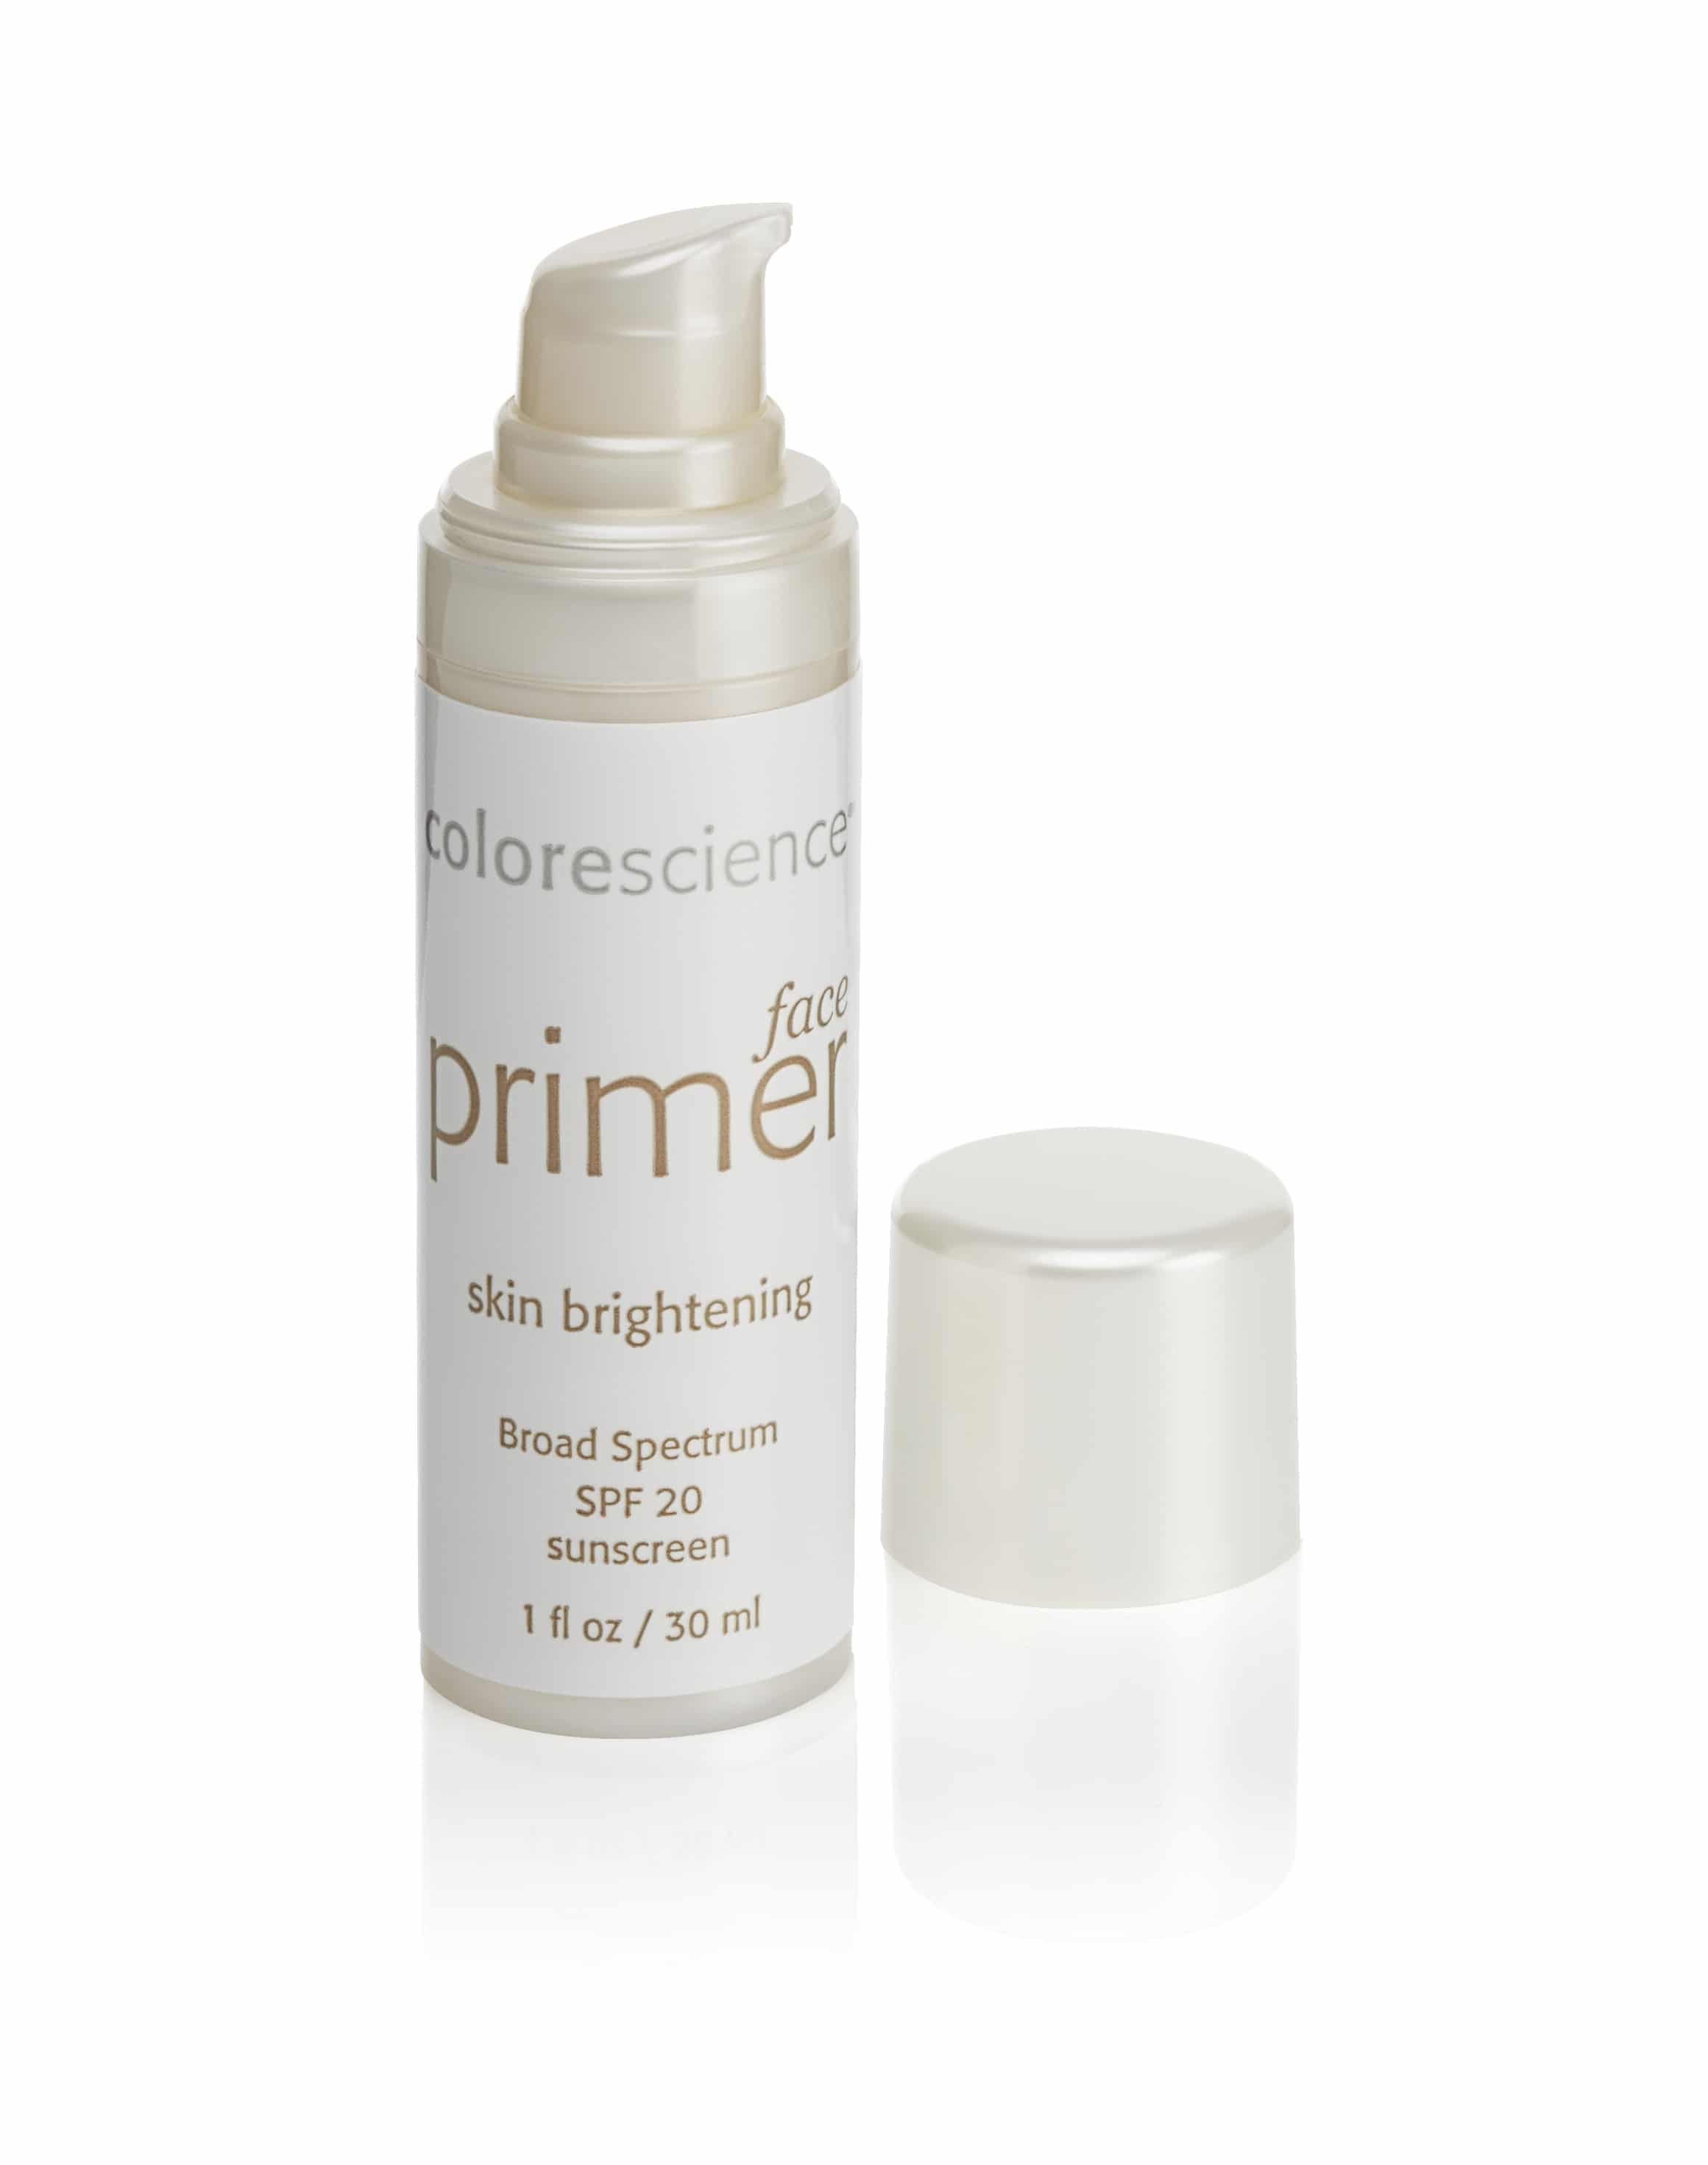 Colorescience make-up inventa un primer illuminante per il viso dal finish satinato.